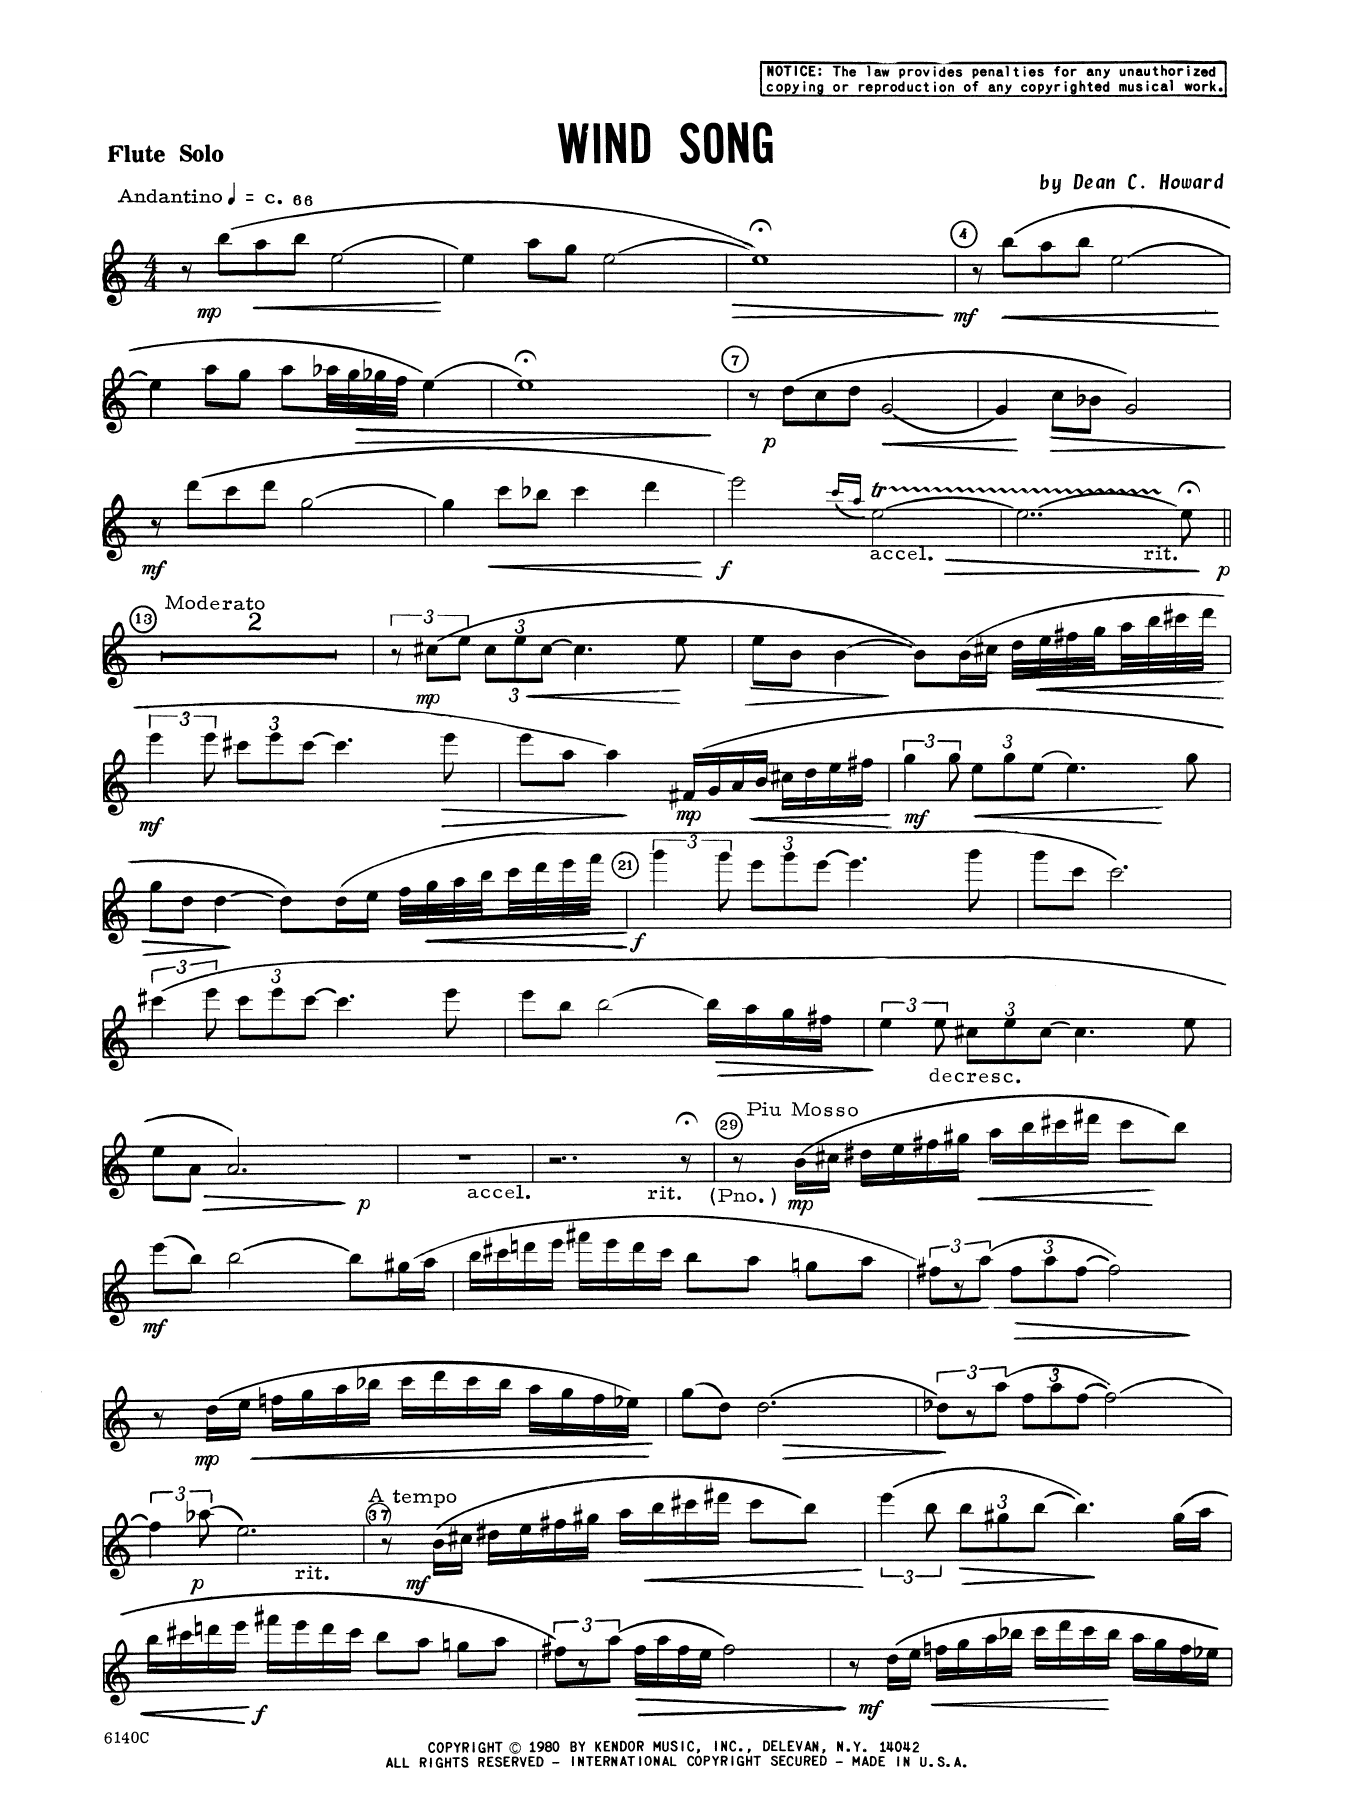 Wind Song (complete set of parts) sheet music for flute and piano by Howard. Score Image Preview.